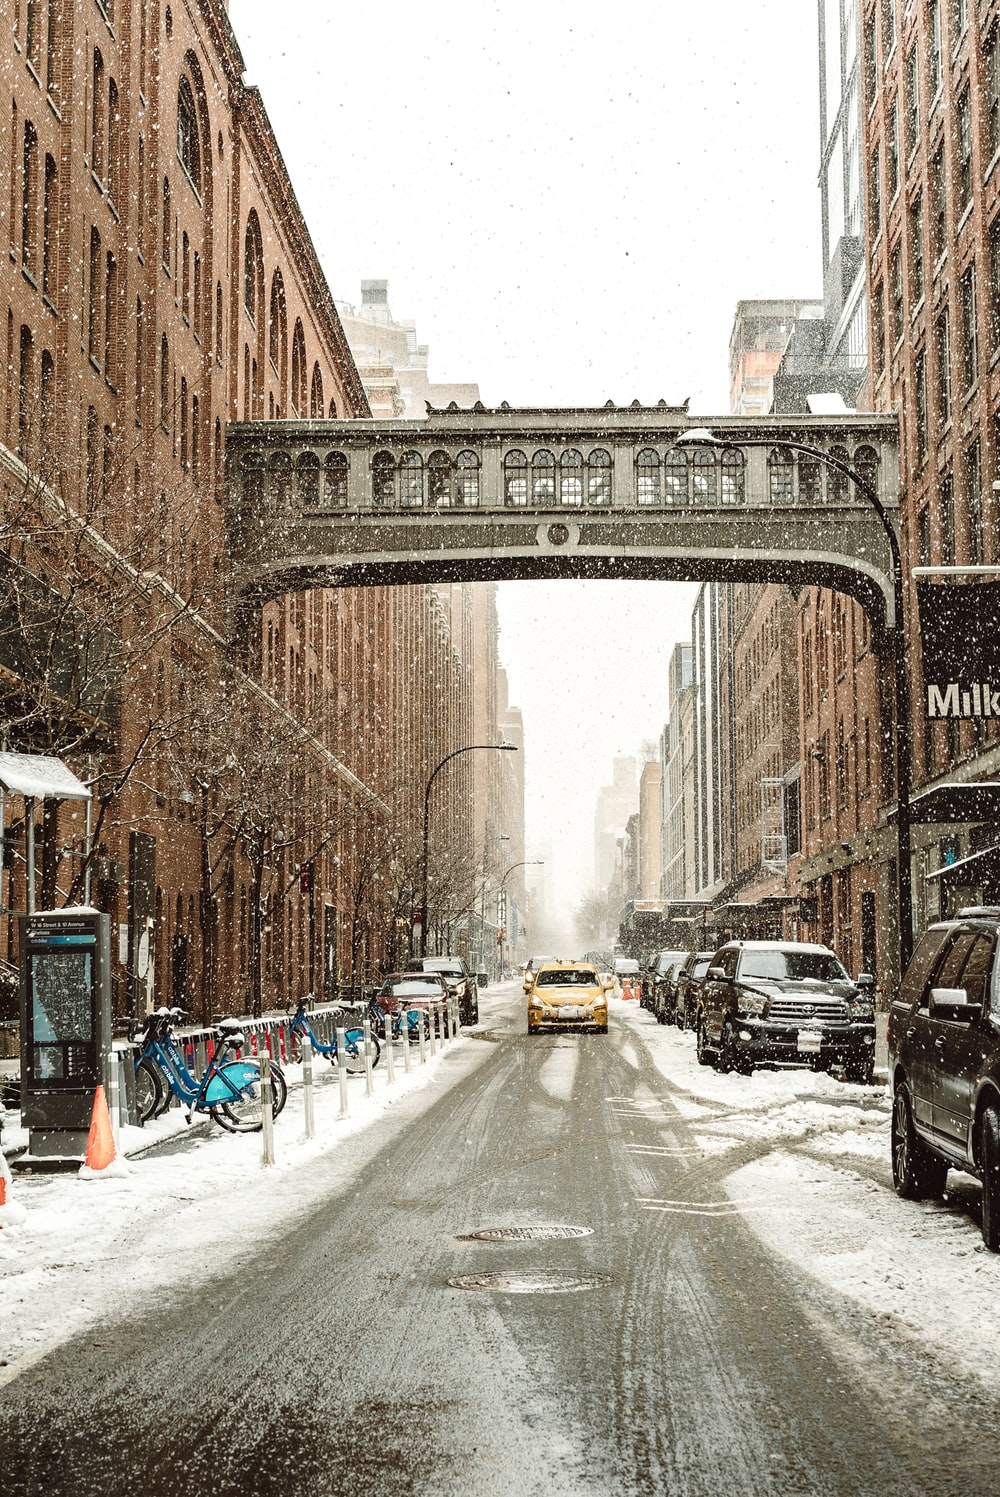 yellow vehicle between brown buildings besides parked vehicles while raining snows